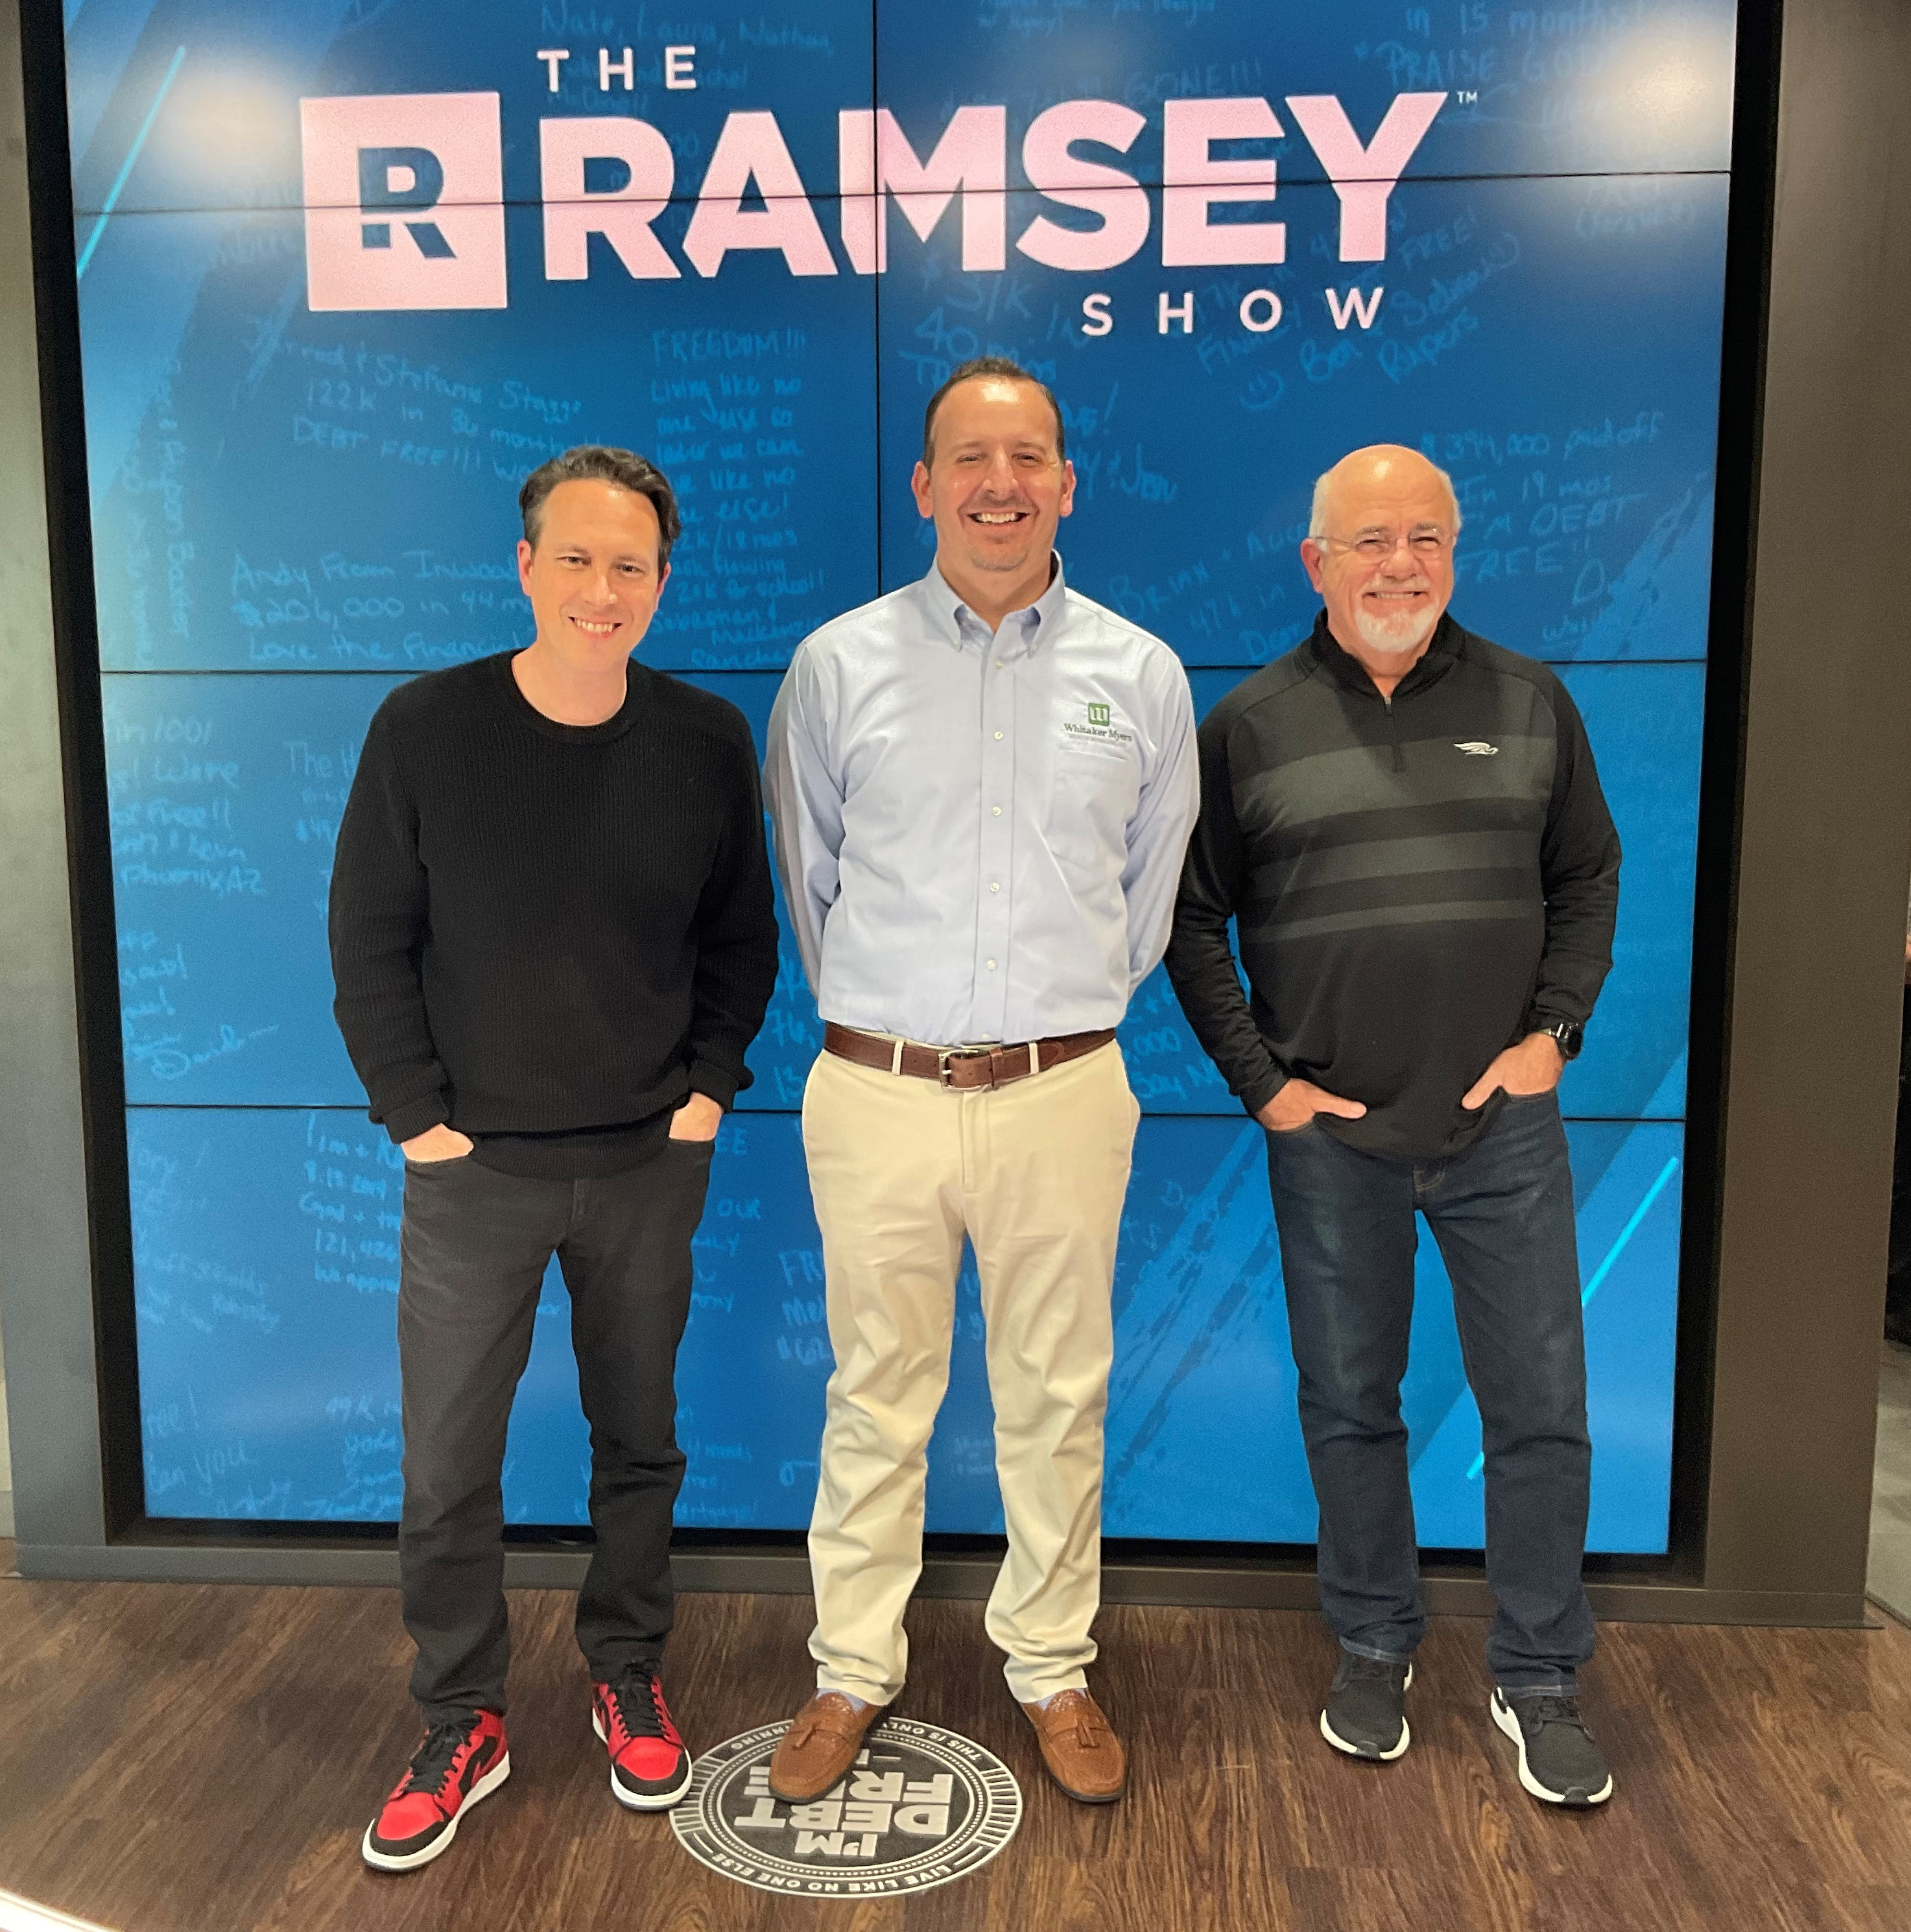 John-mark Young, financial advisor Massillon OH